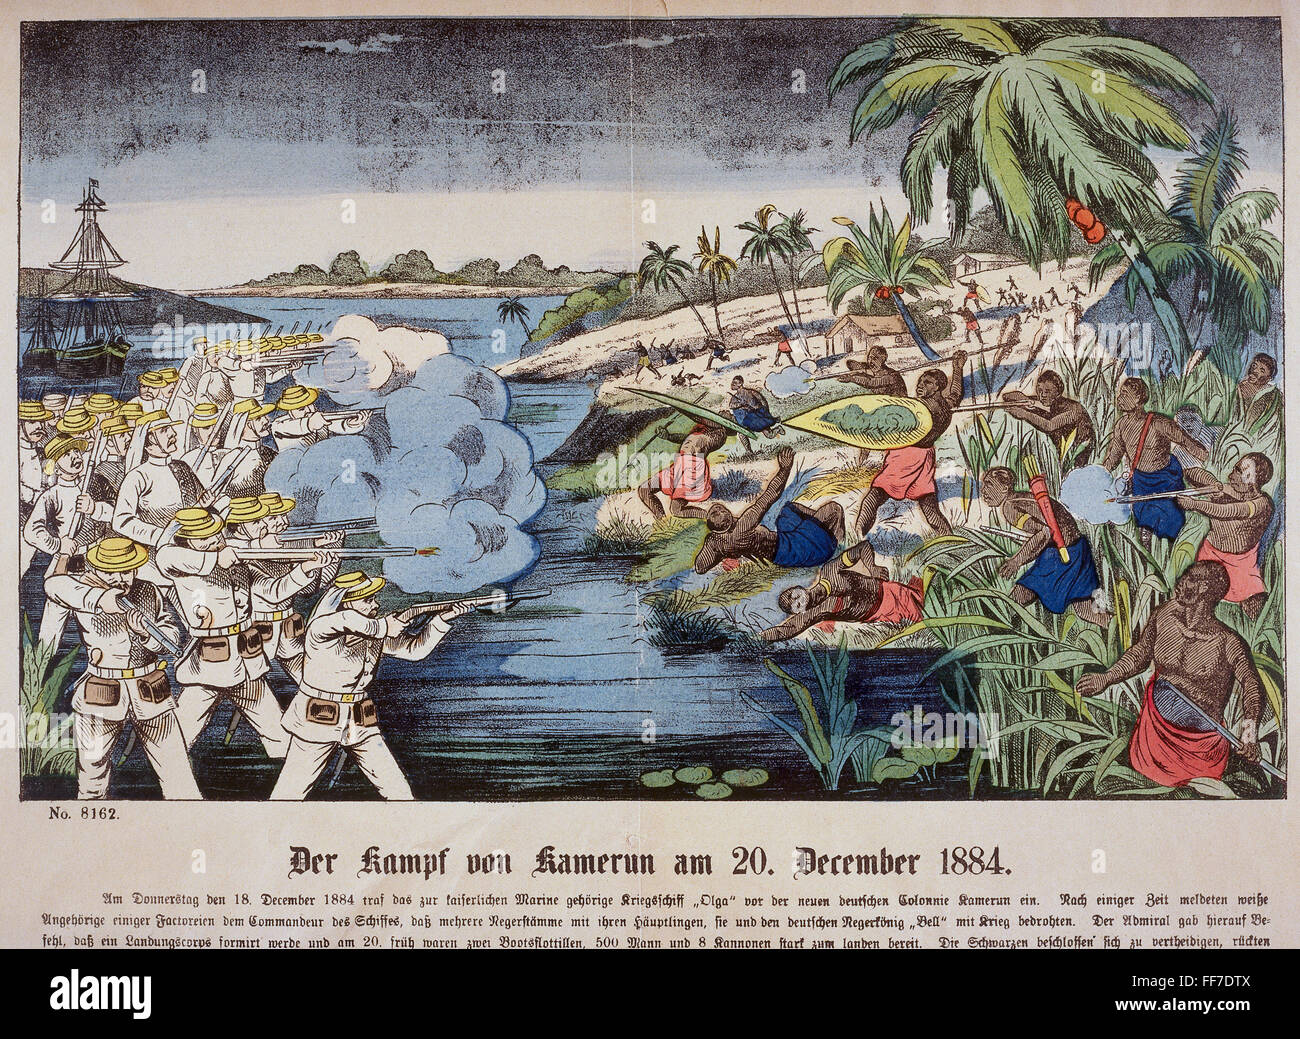 colonialism, fight between German navy soldiers and natives, Cameroon, 20.12.1884, Additional-Rights-Clearences - Stock Image